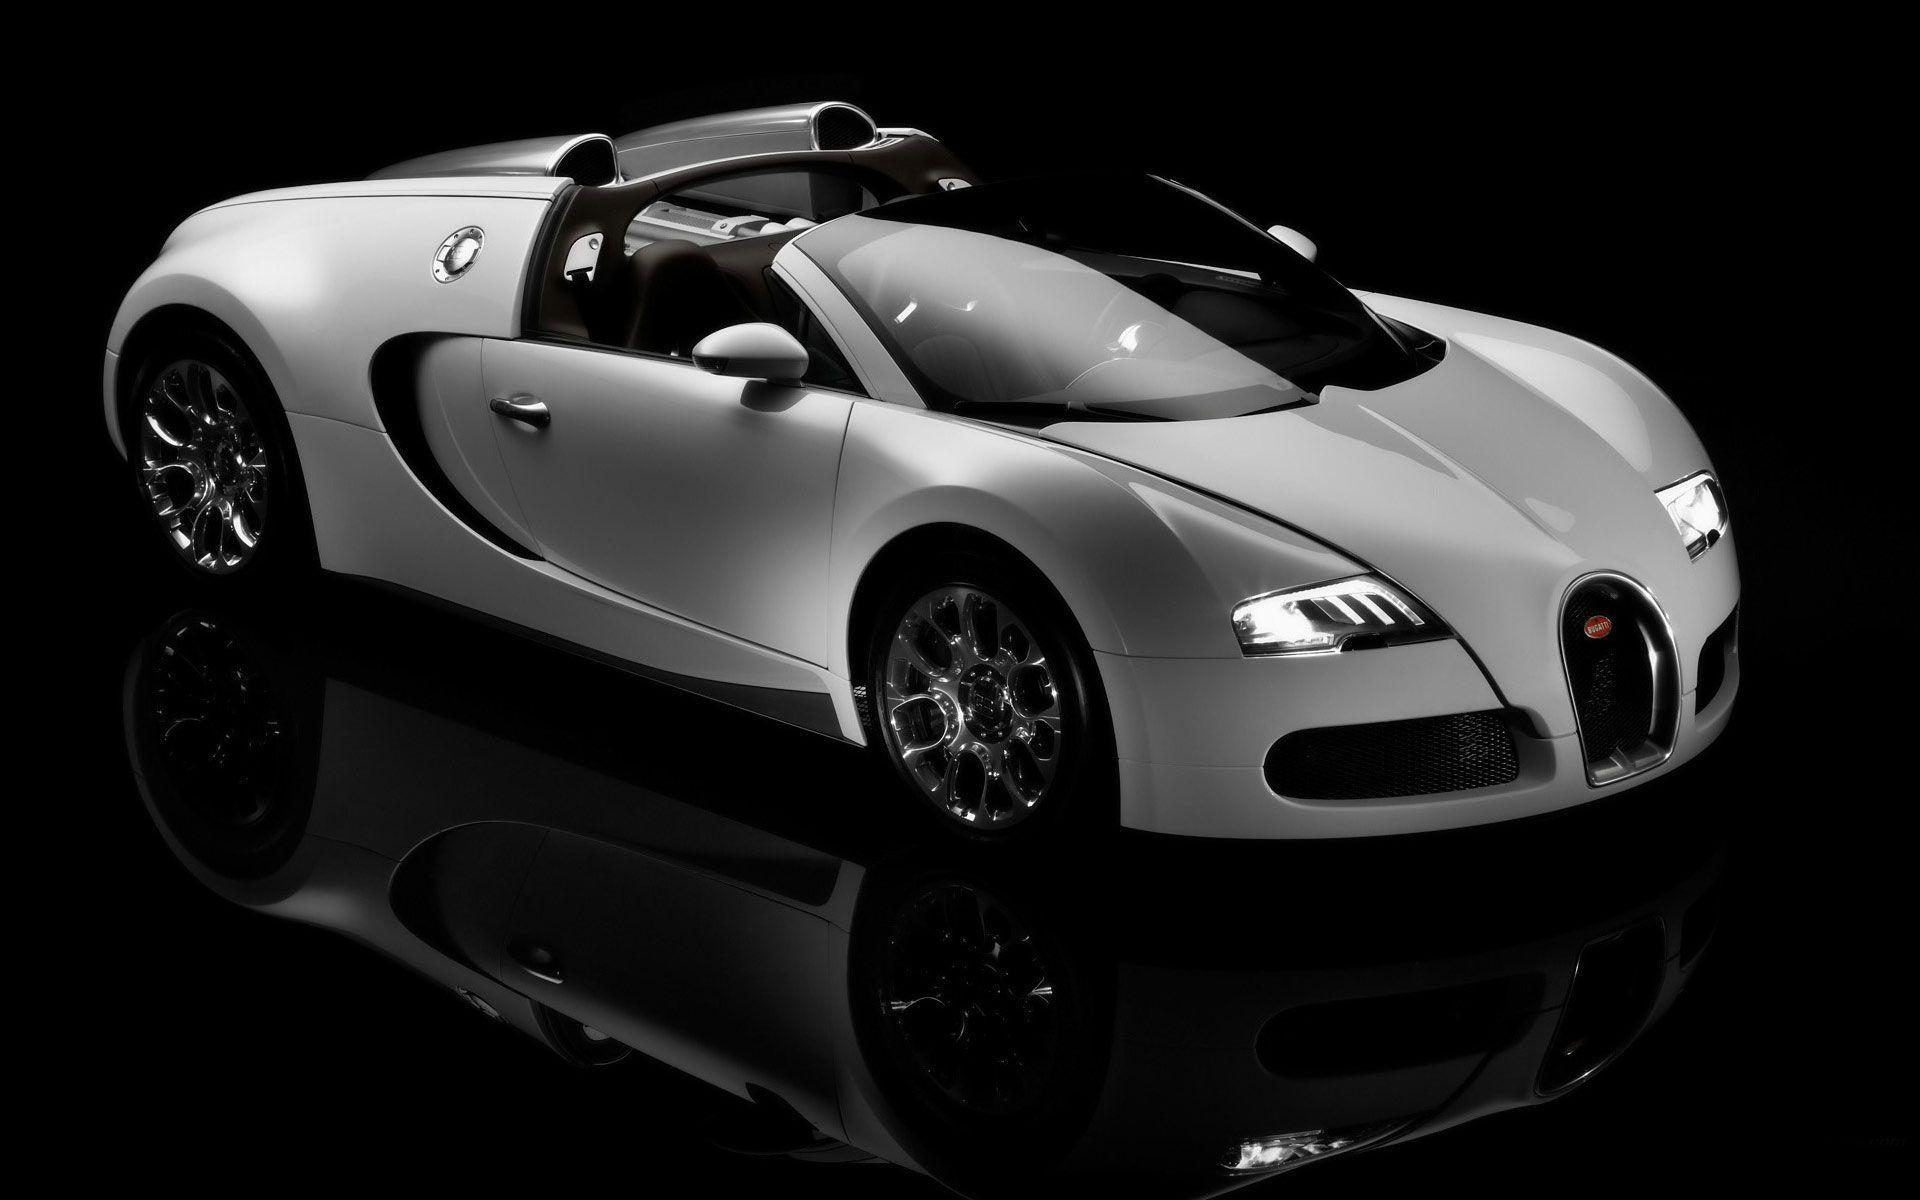 Bugatti Veyron Interior wallpaper - 819771